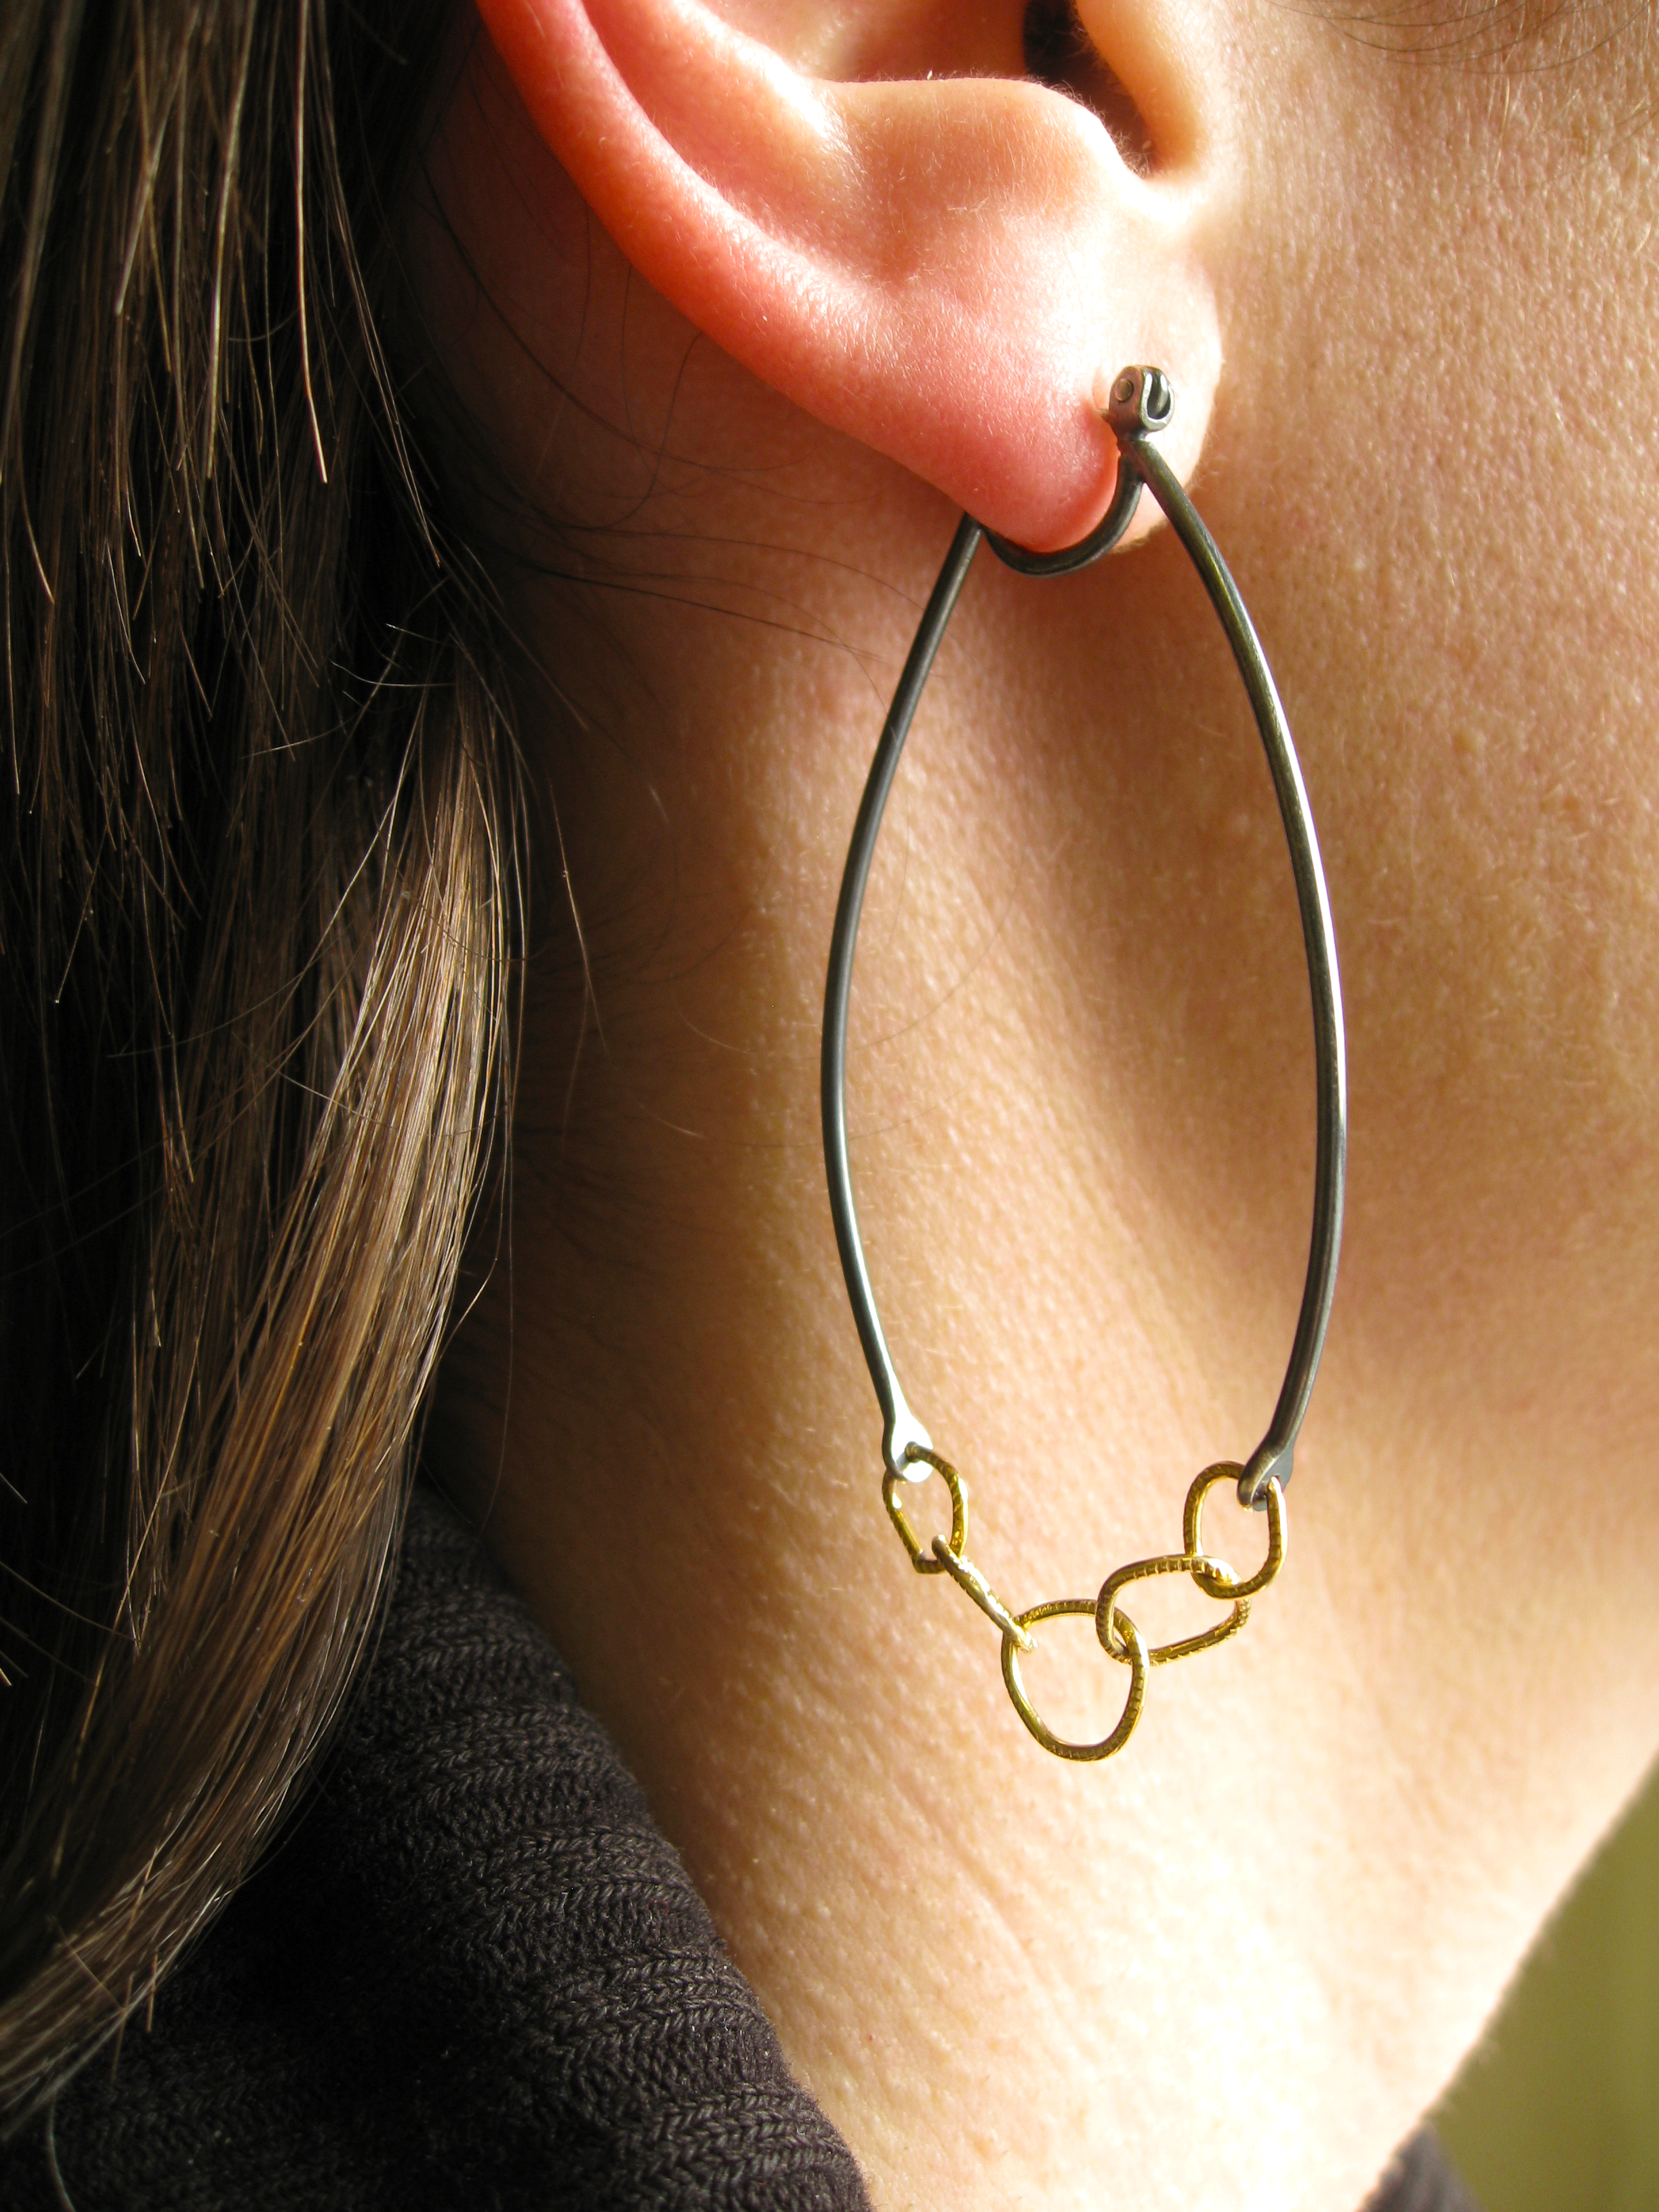 LINKED - chain link hoop earrings - oxidized silver and 18 karat gold - sustainable jewelry san francisco - sharon z jewelry sharon zimmerman.png